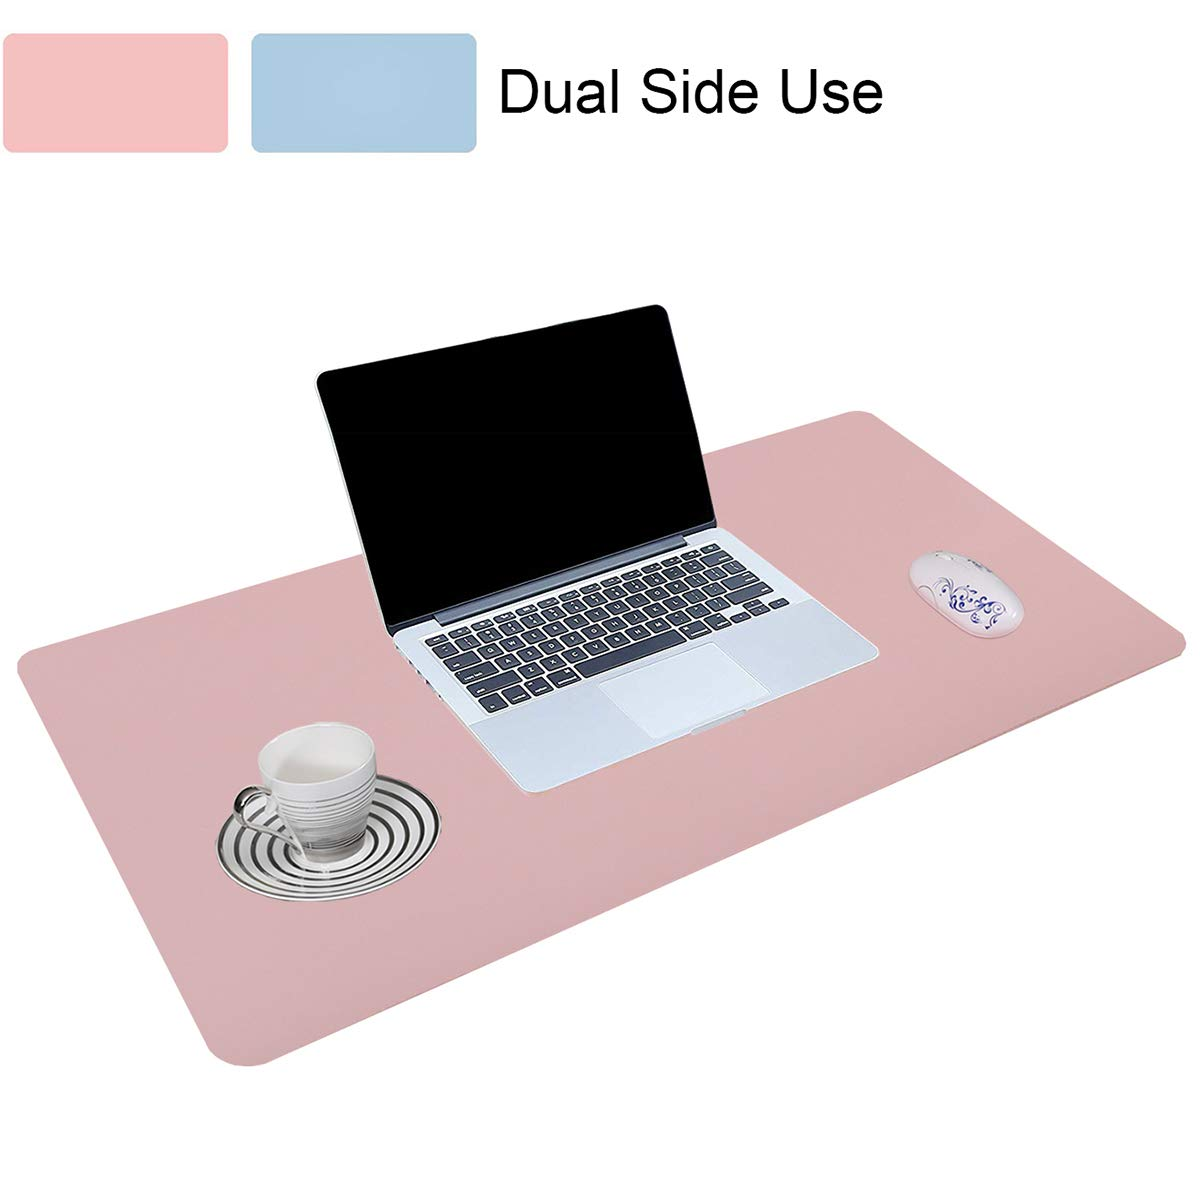 LIDORY Desk Pad with Dual-Side Use,Non-Slip and Waterproof,for Office and Home,31.5